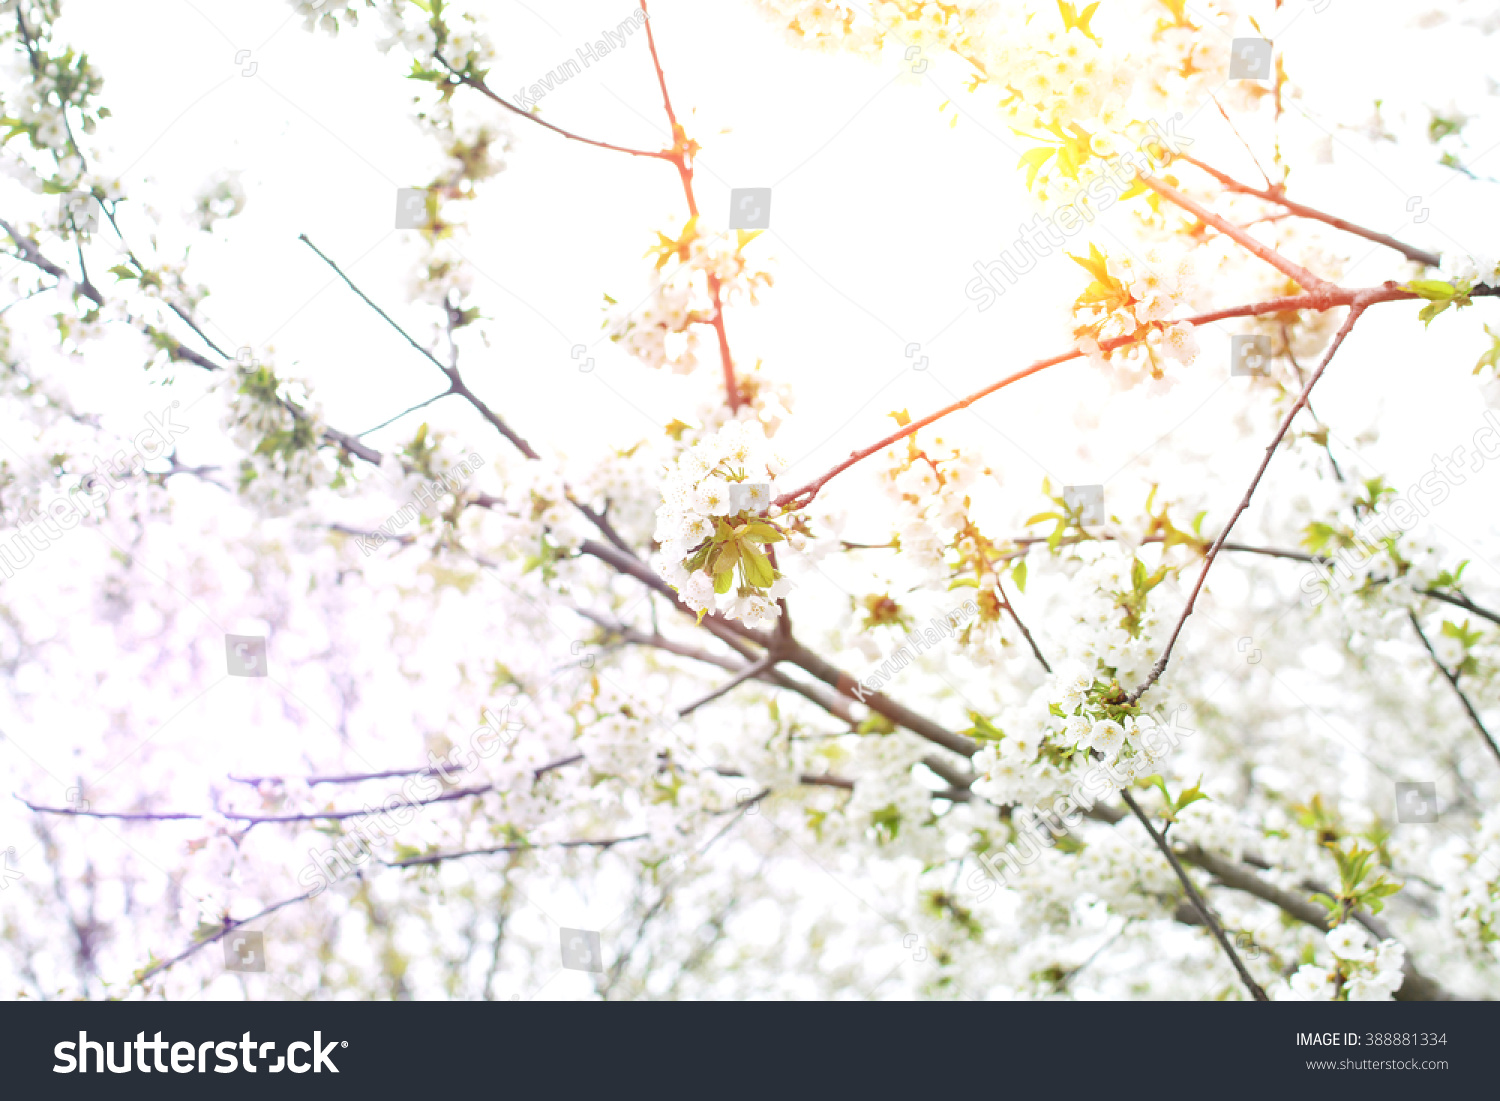 Royalty Free Cherry Tree Blooms And Sun In 388881334 Stock Photo